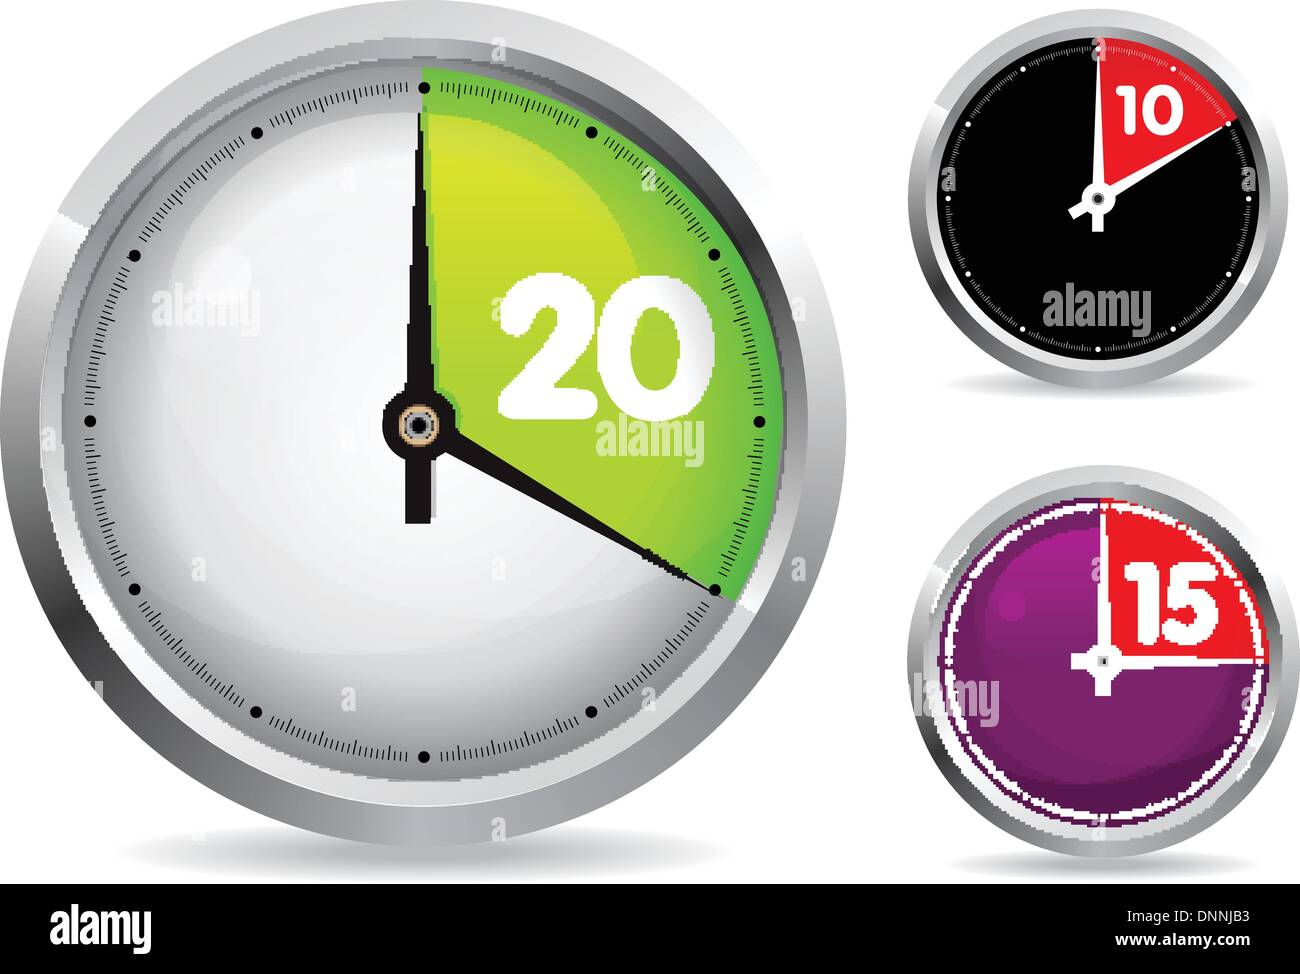 set of 10 and 20 minutes timer vector illustration easy ro edit